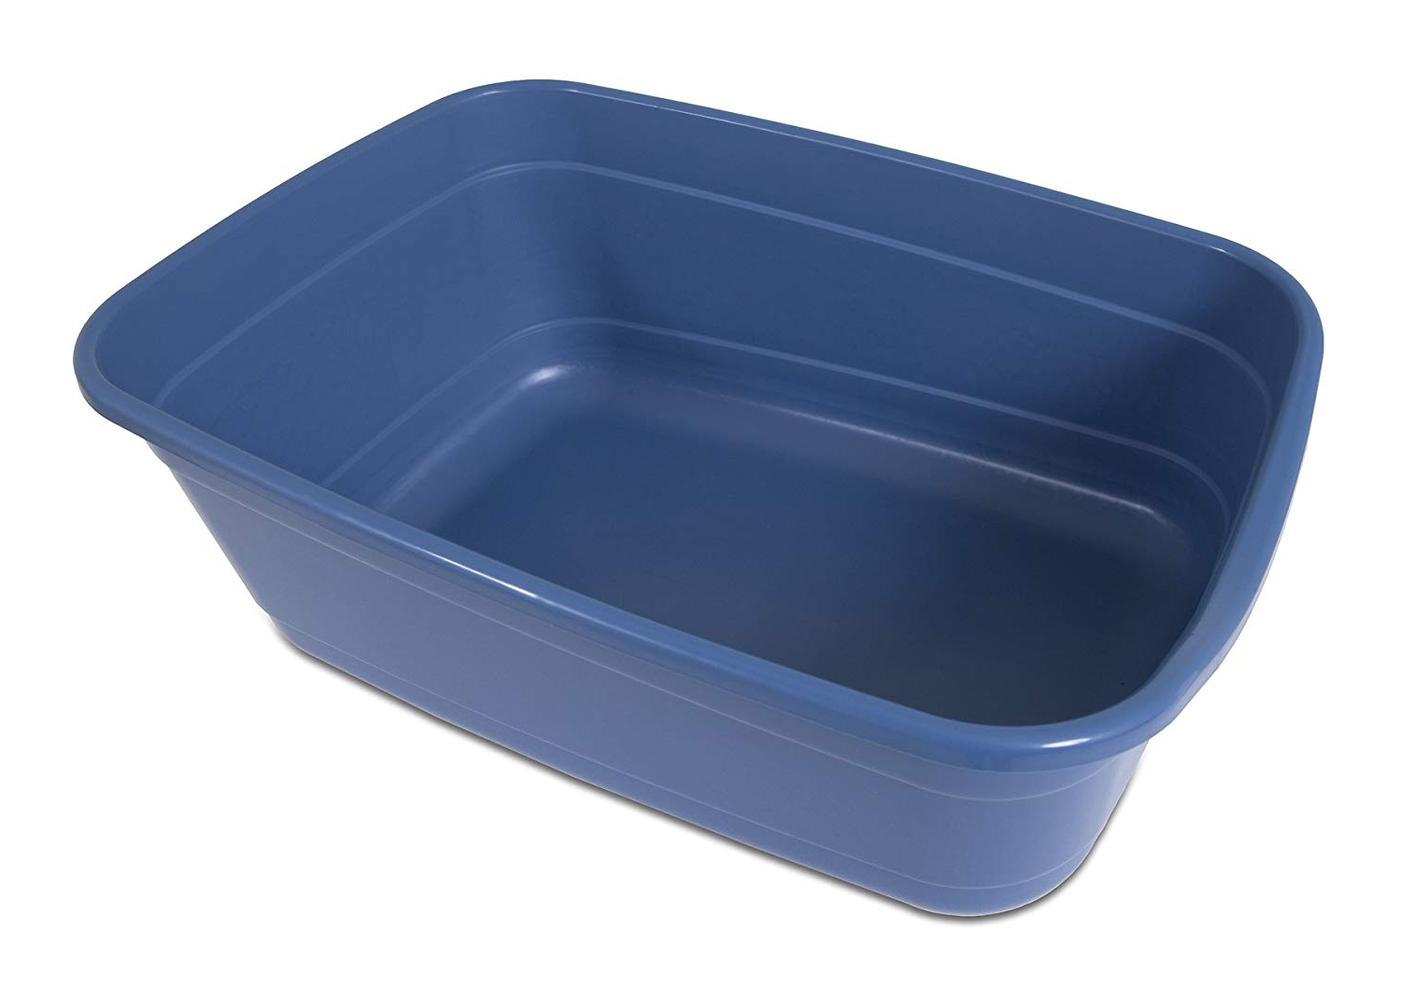 Petmate High-sided Litter Box, Durable